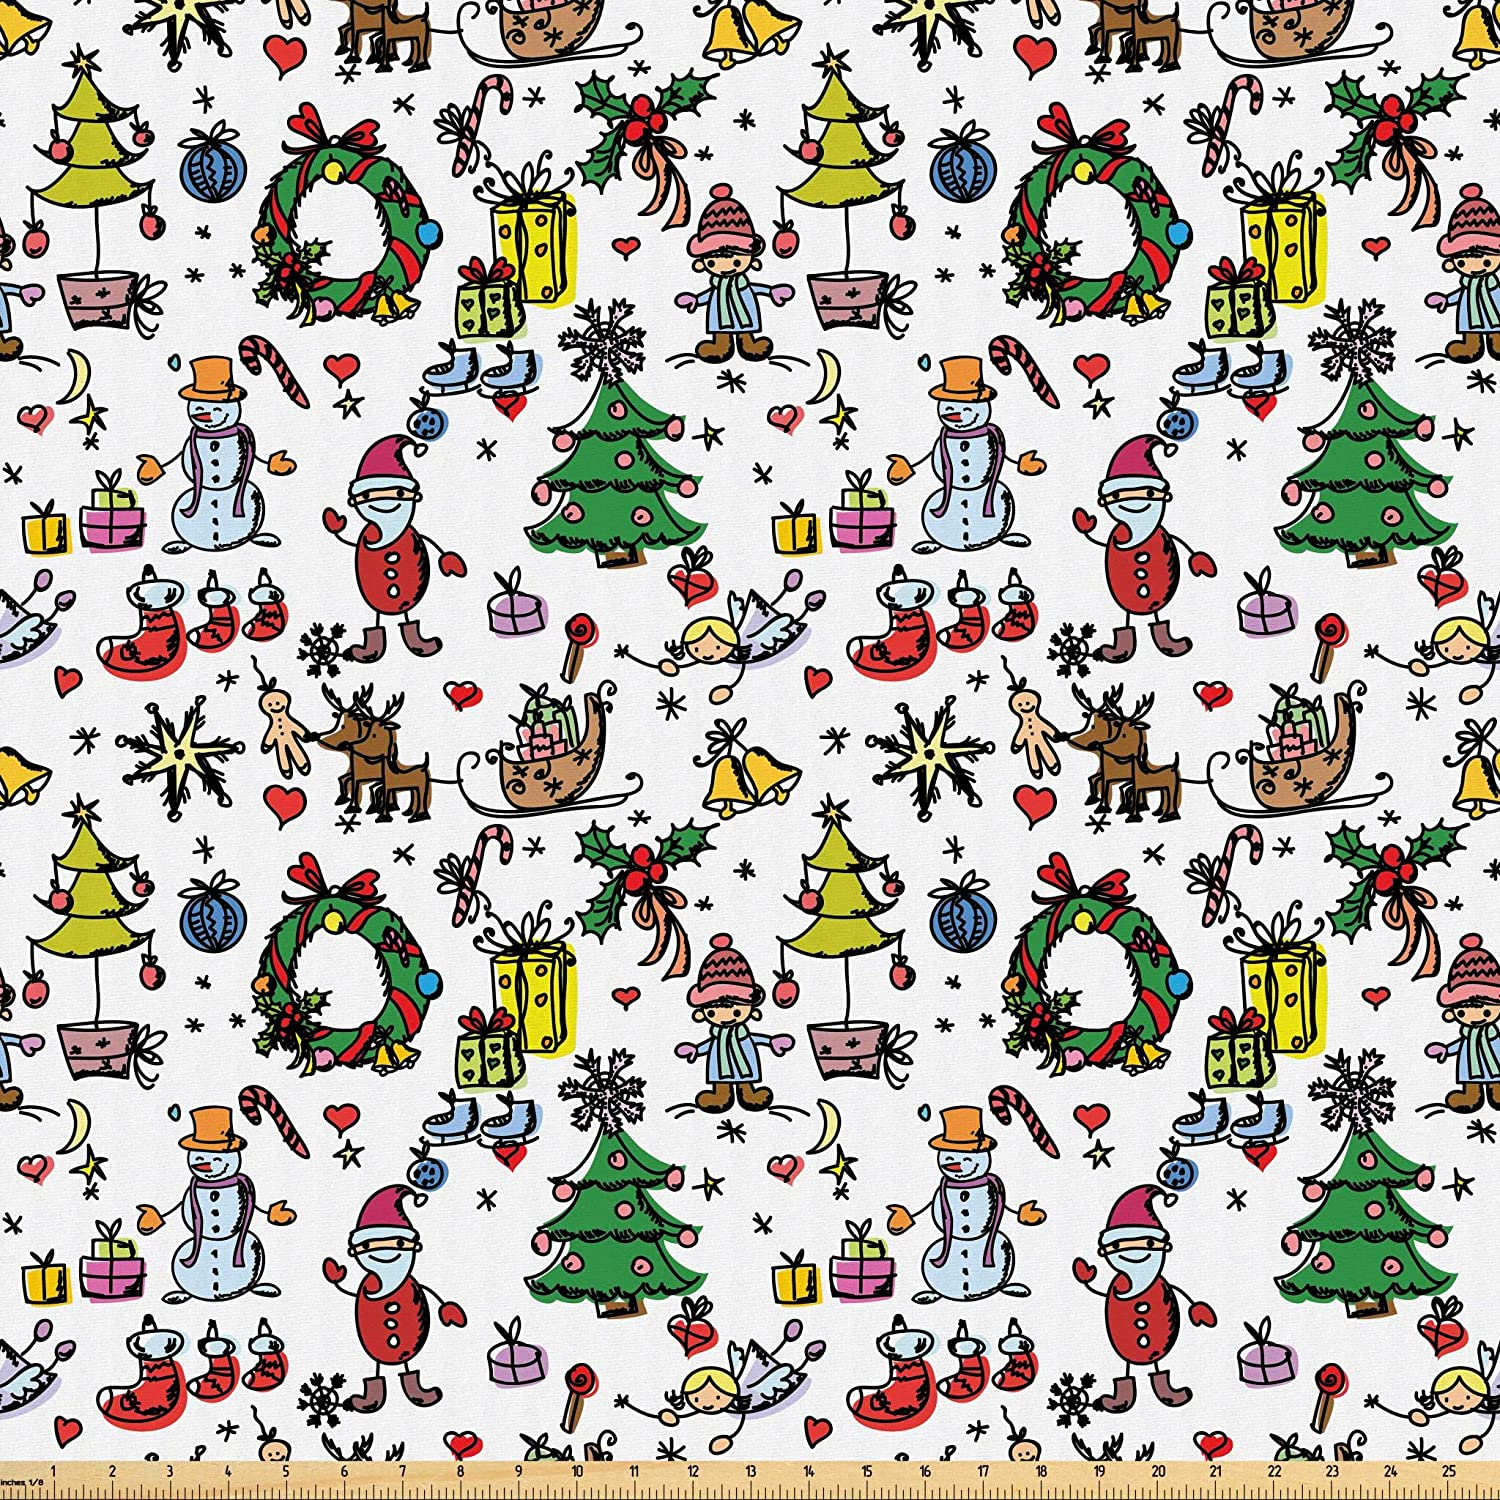 Lunarable Nursery Fabric by The Yard, Christmas Elements Present Boxes Cheerful Celebration Snowman Santa Claus, Microfiber Fabric for Arts and Crafts Textiles & Decor, Multicolor